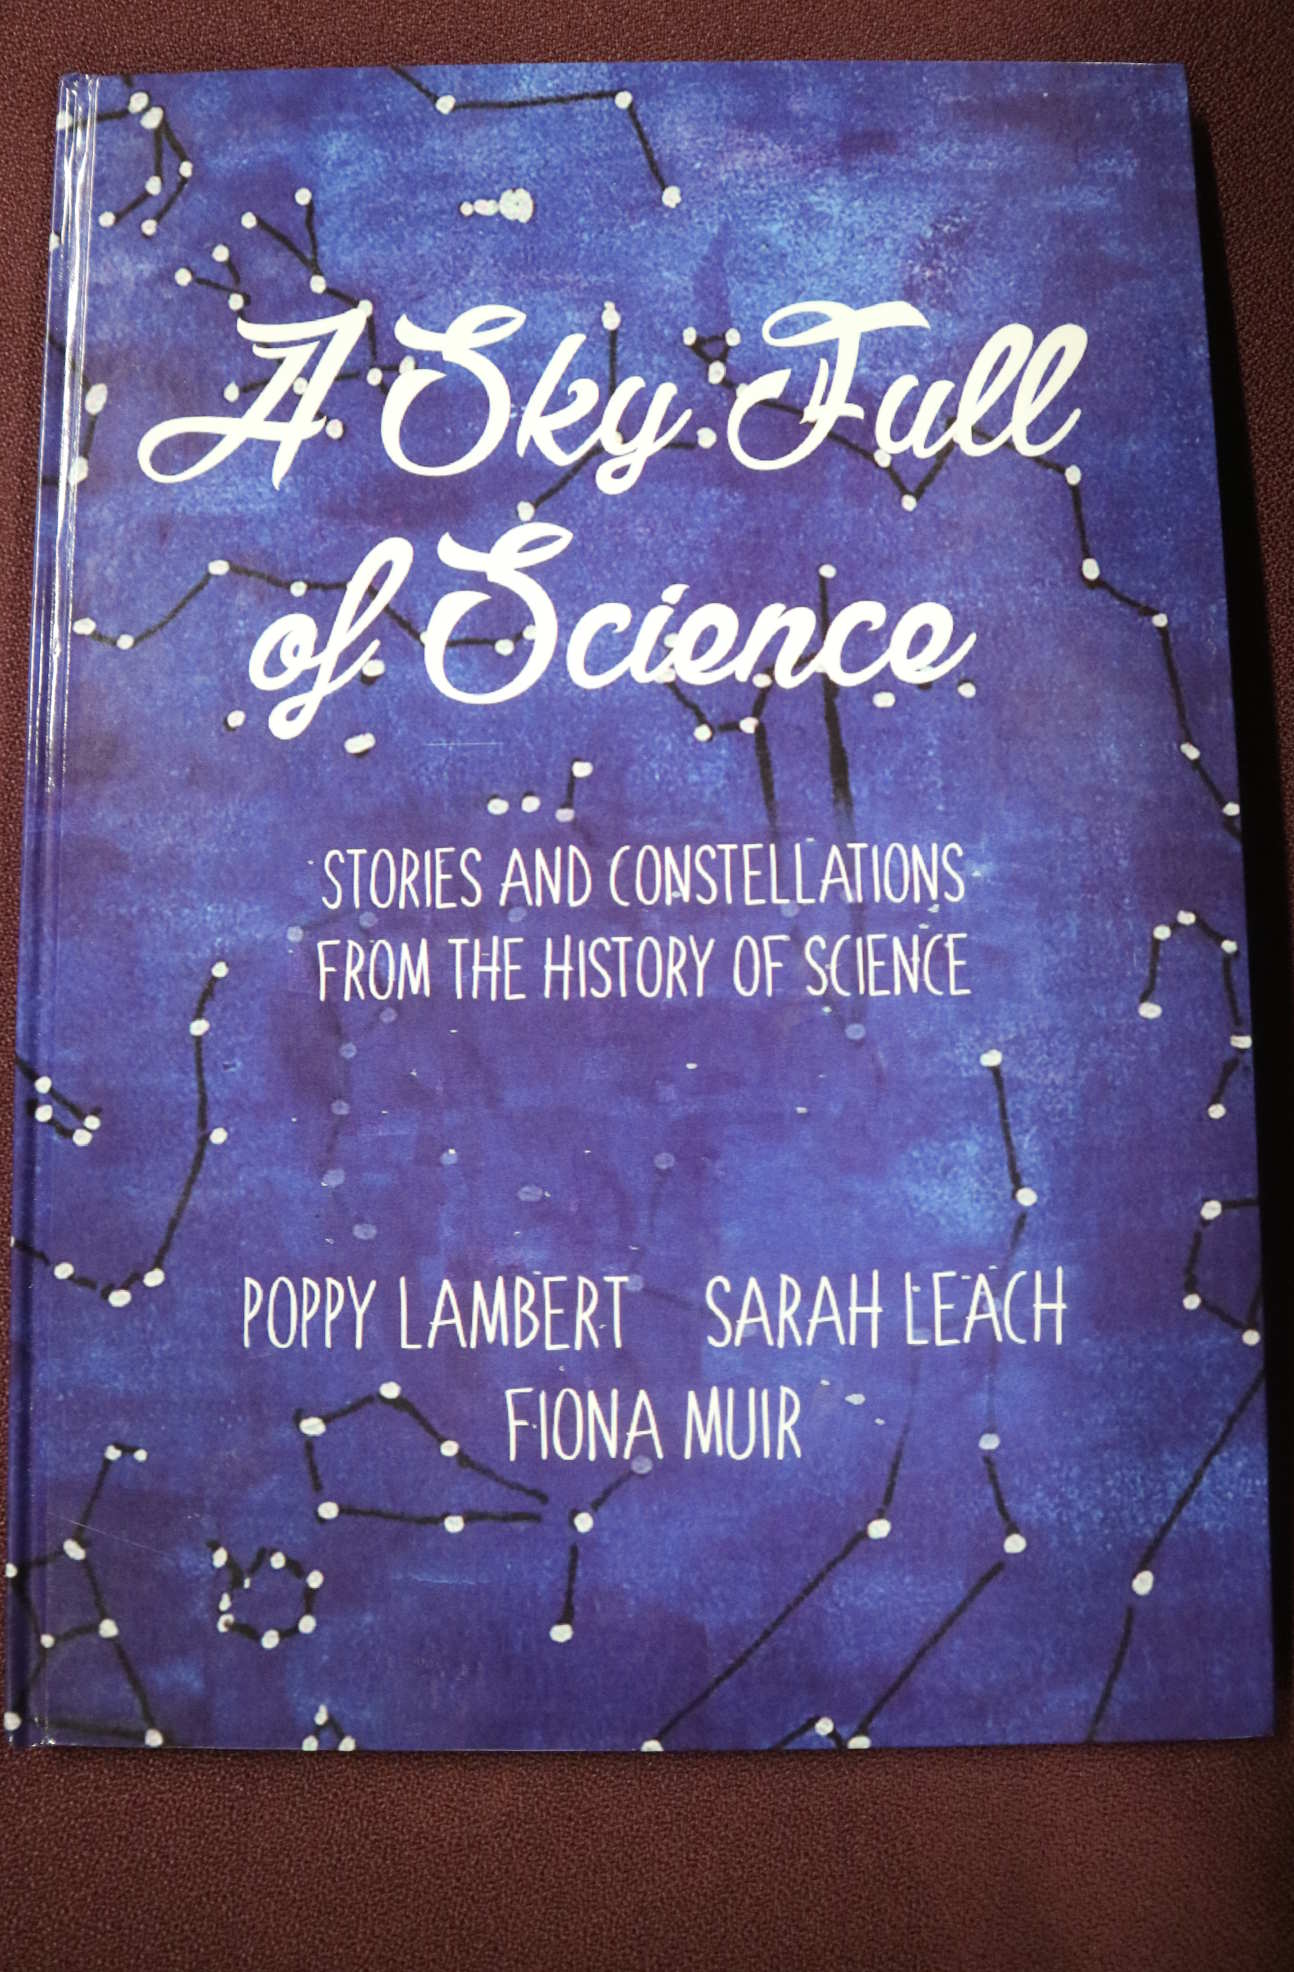 A book with the title 'A sky full of science'